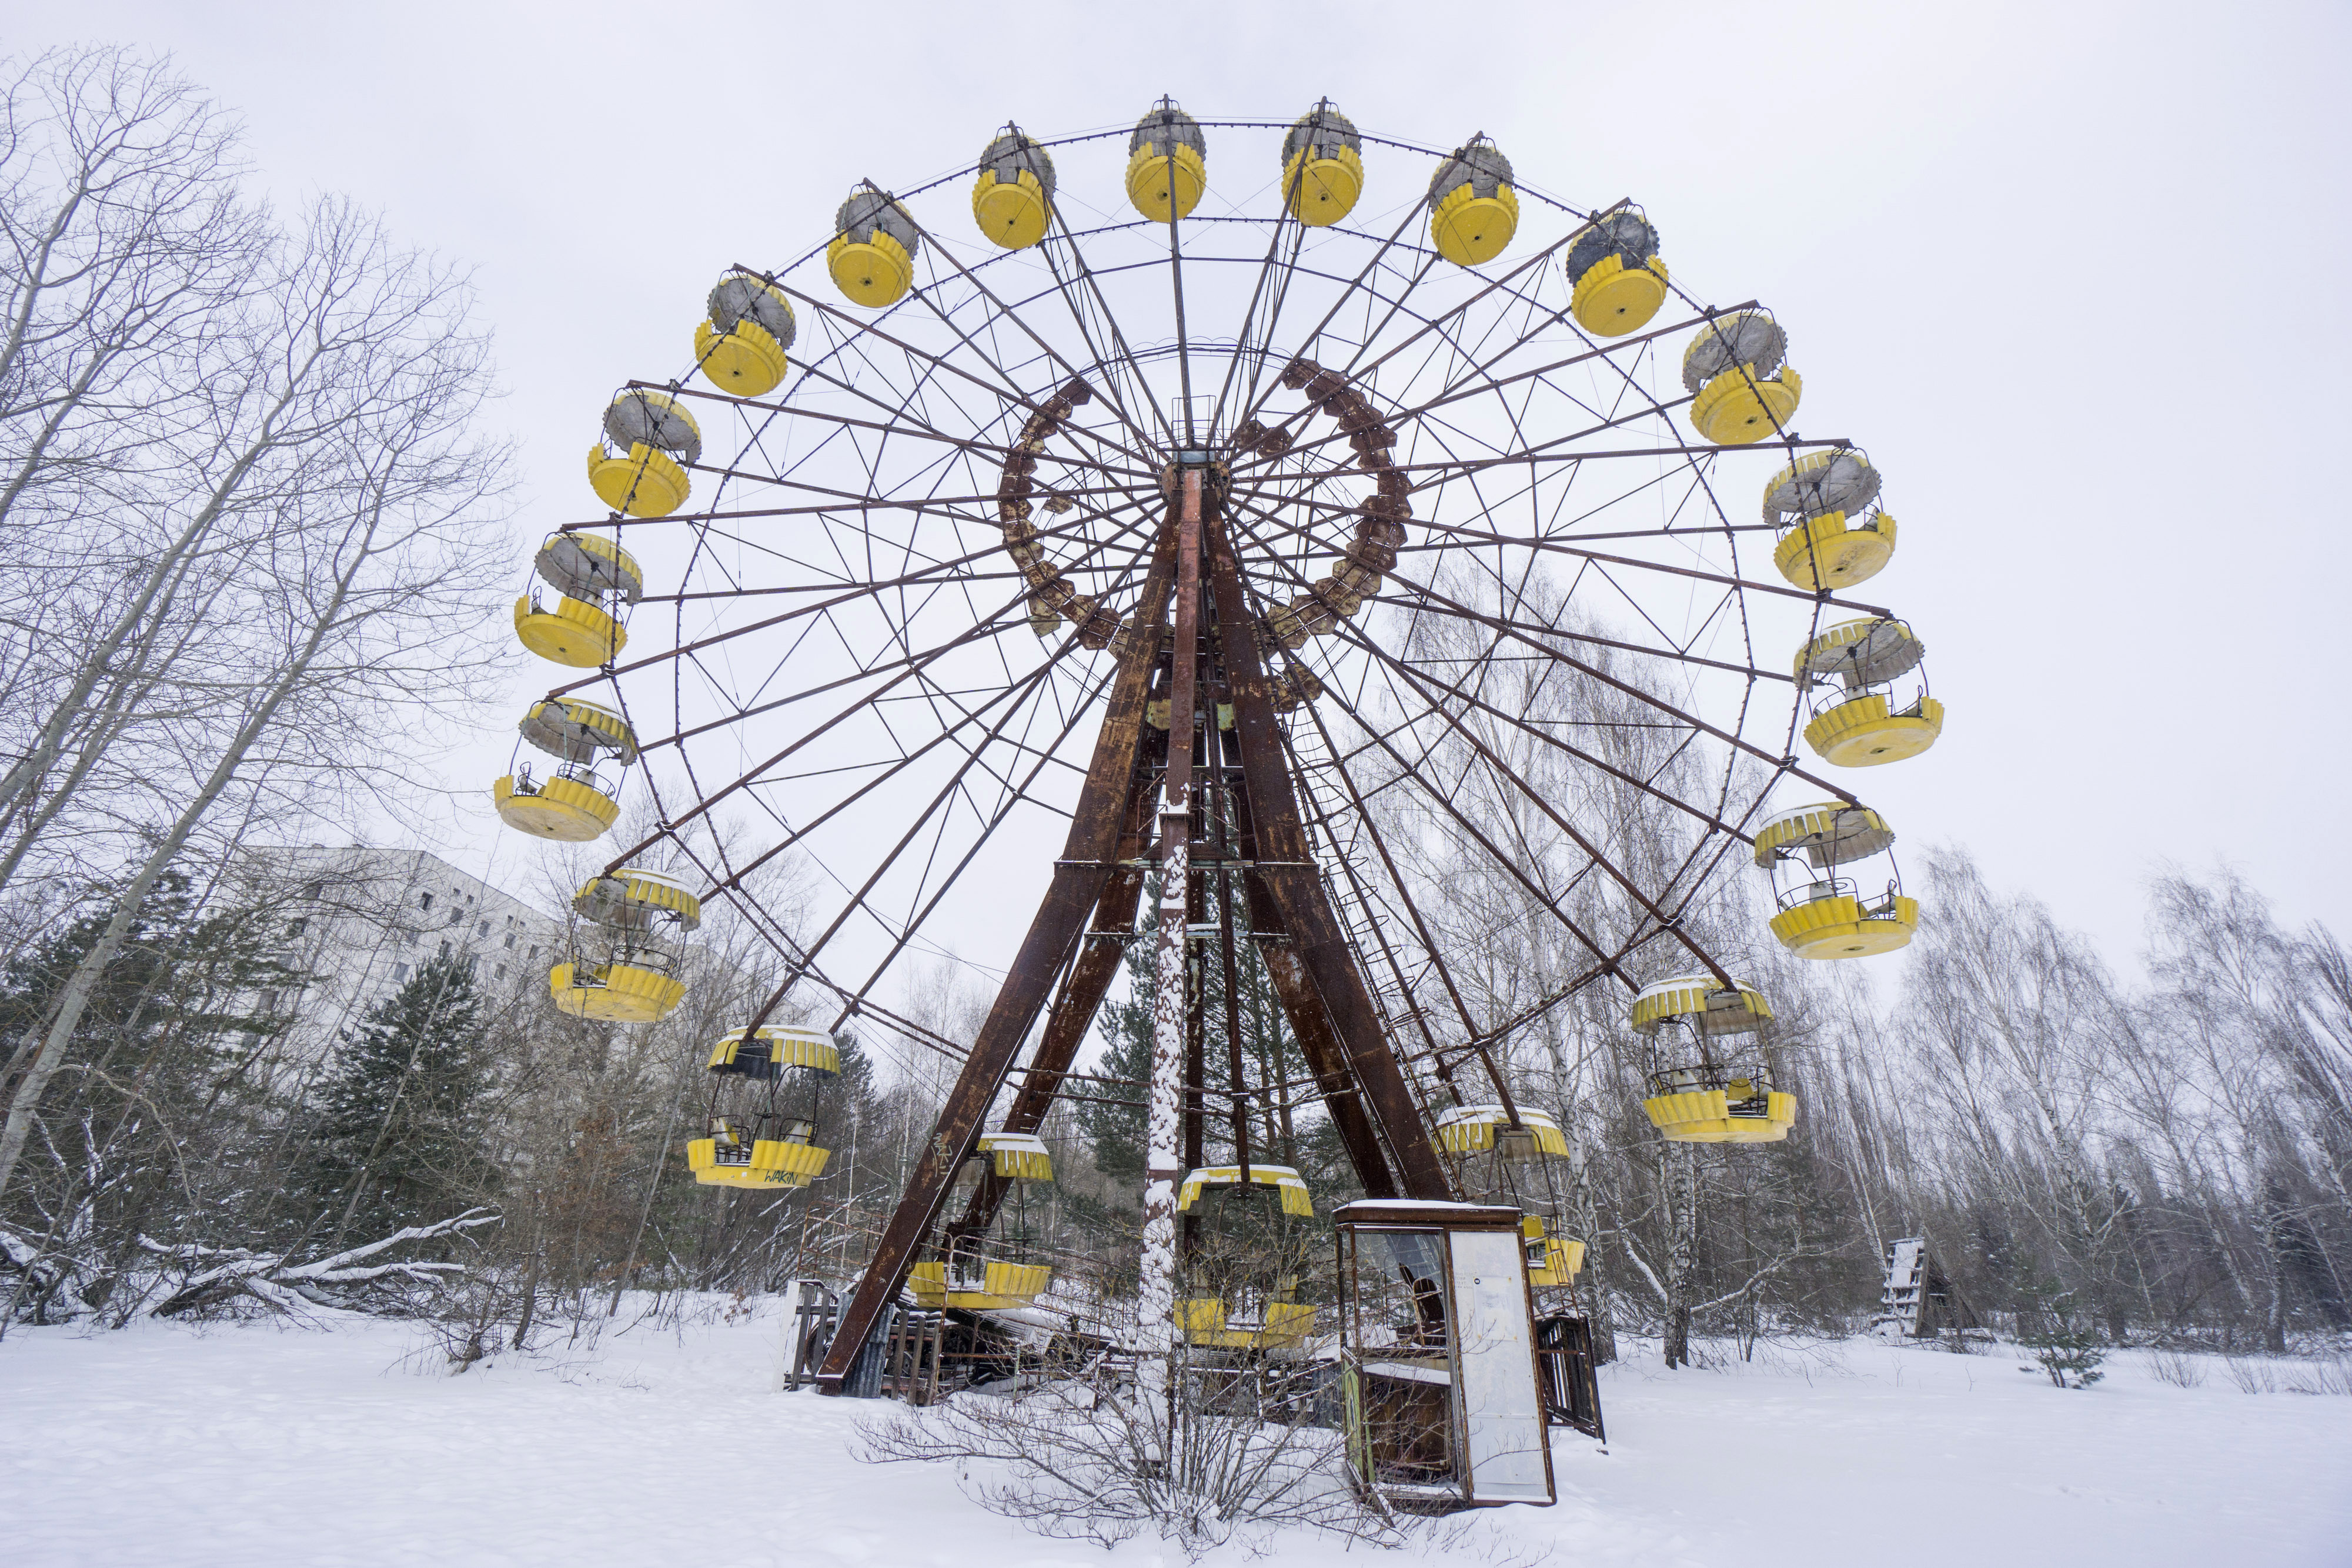 An abandoned ferris wheel in the evacuated city of in Pripyat, Ukraine, on Feb. 28, 2018, where Solar Chernobyl SPP is the latest experiment to give a place synonymous with catastrophe a new life after previous efforts failed